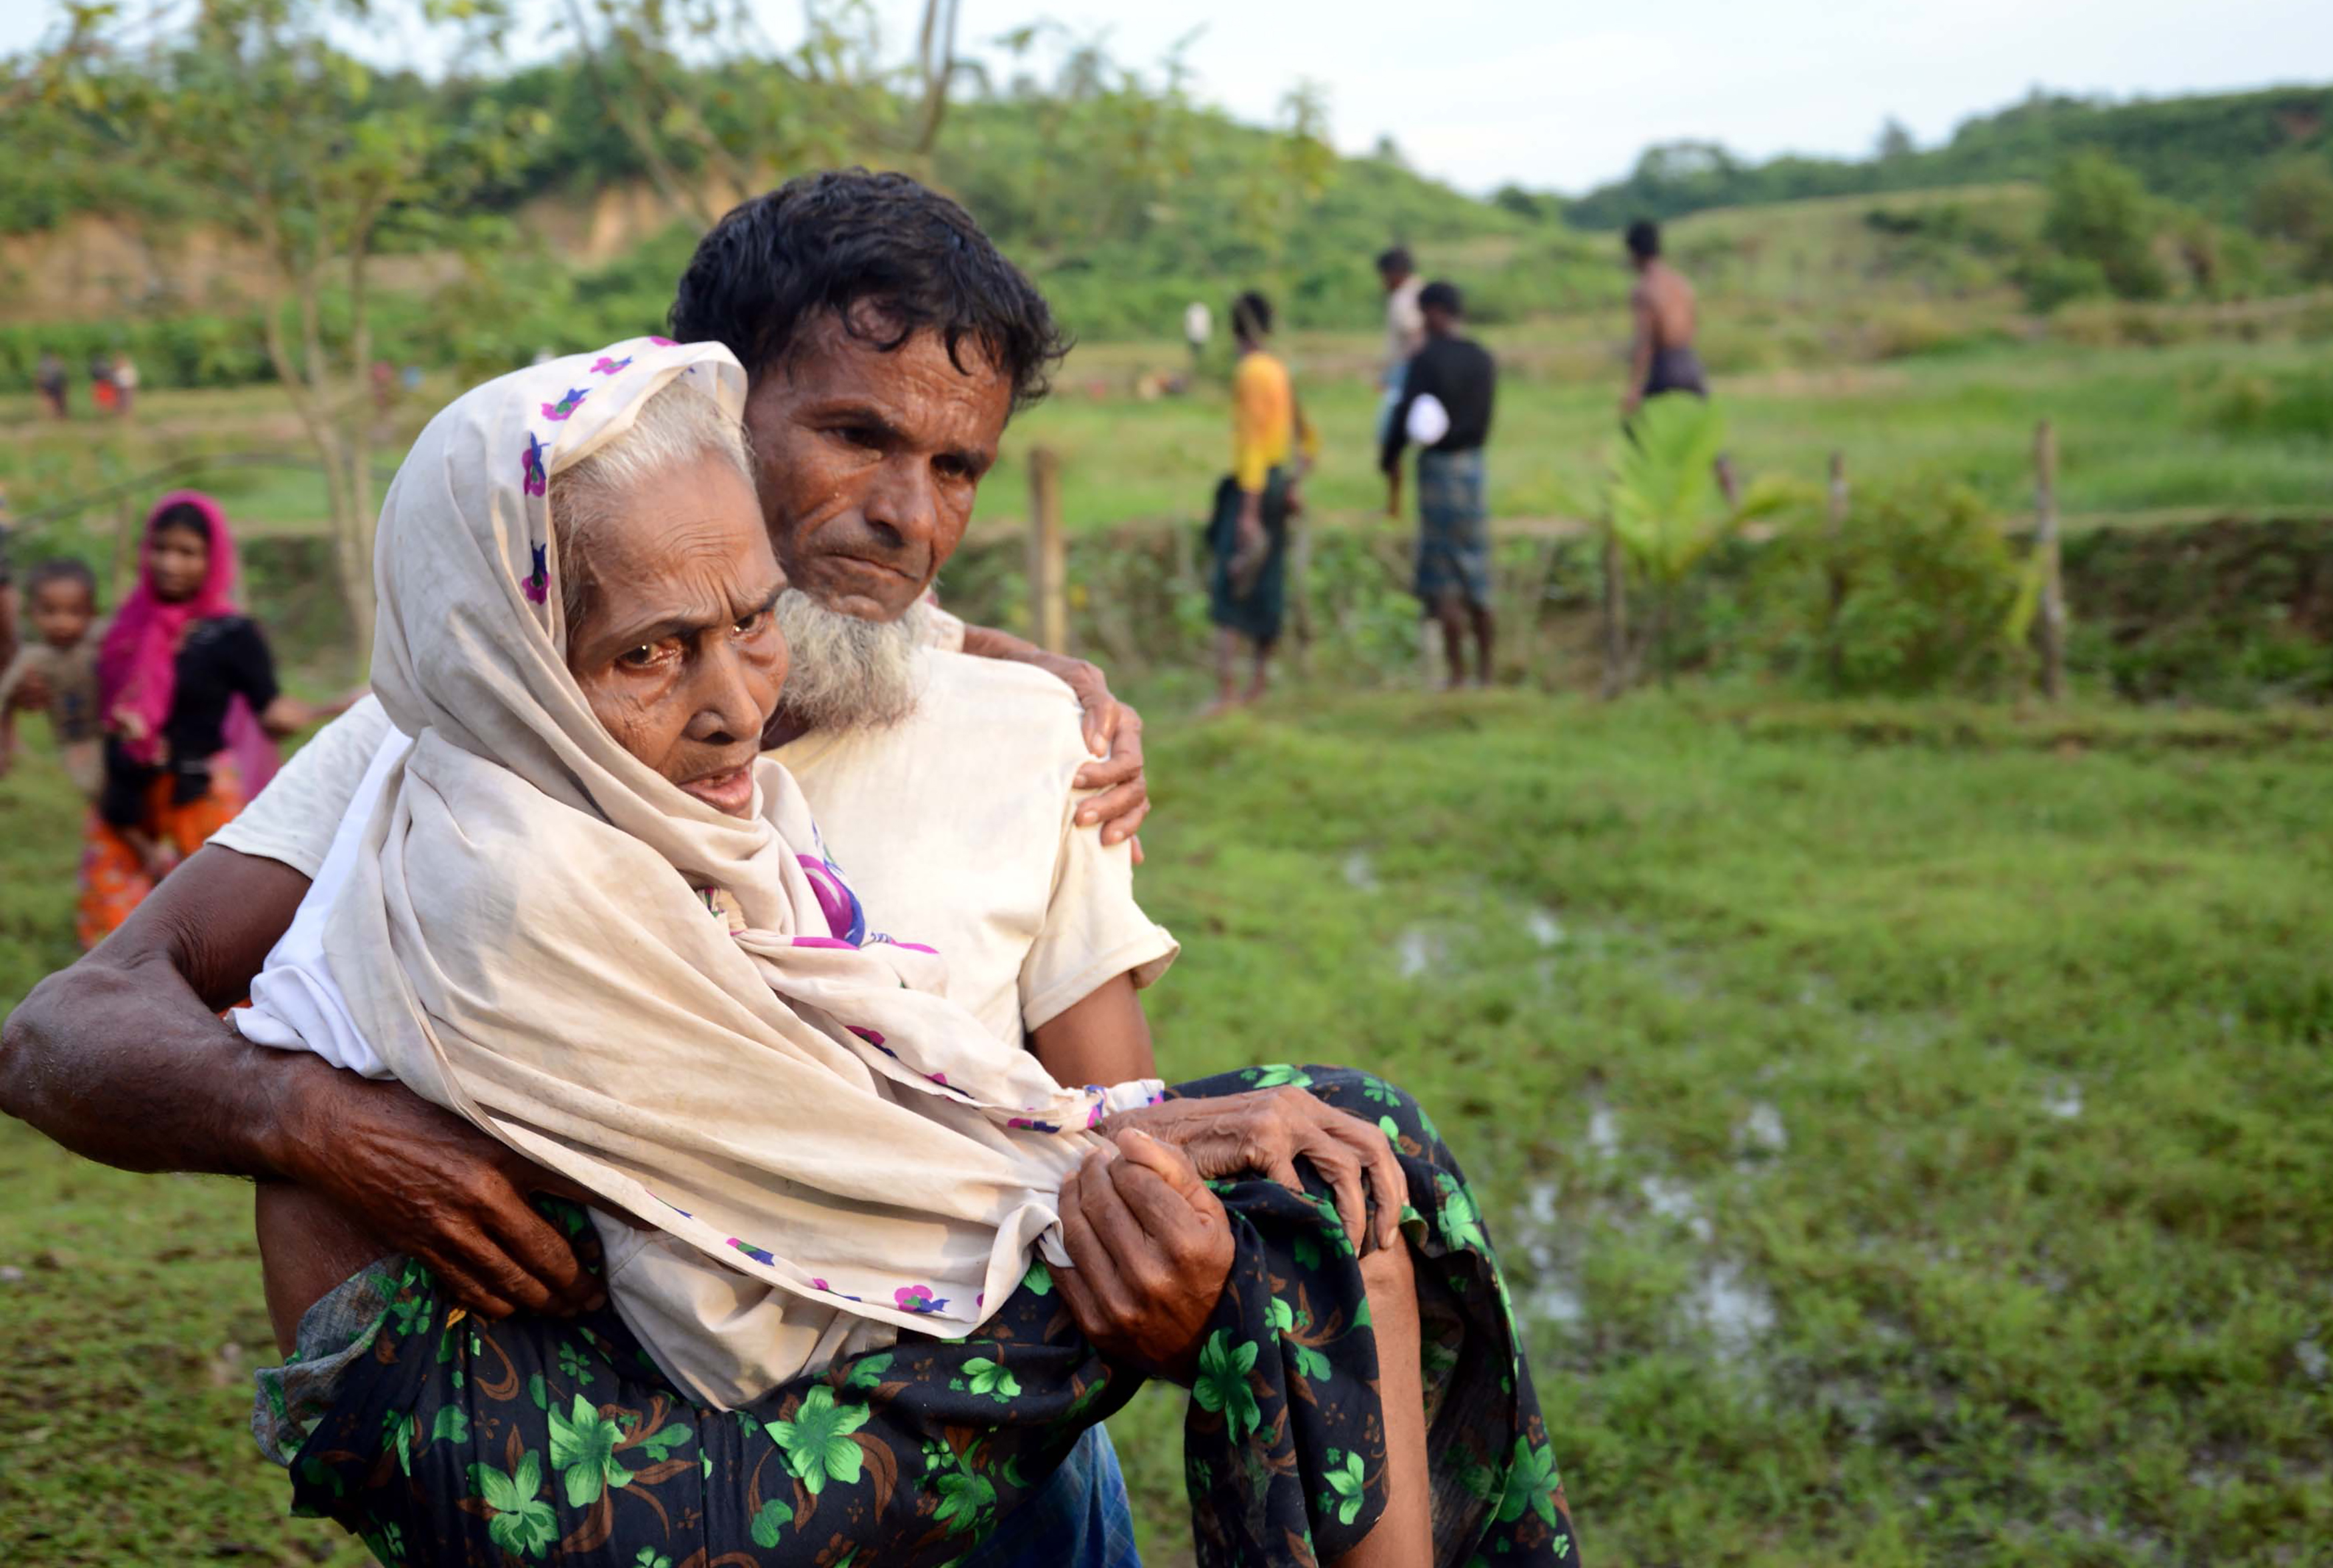 This Aug. 30, 2017 photo shows a Rohingya man carrying his mother in Ukhiya after crossing the Bangladesh-Myanmar border.